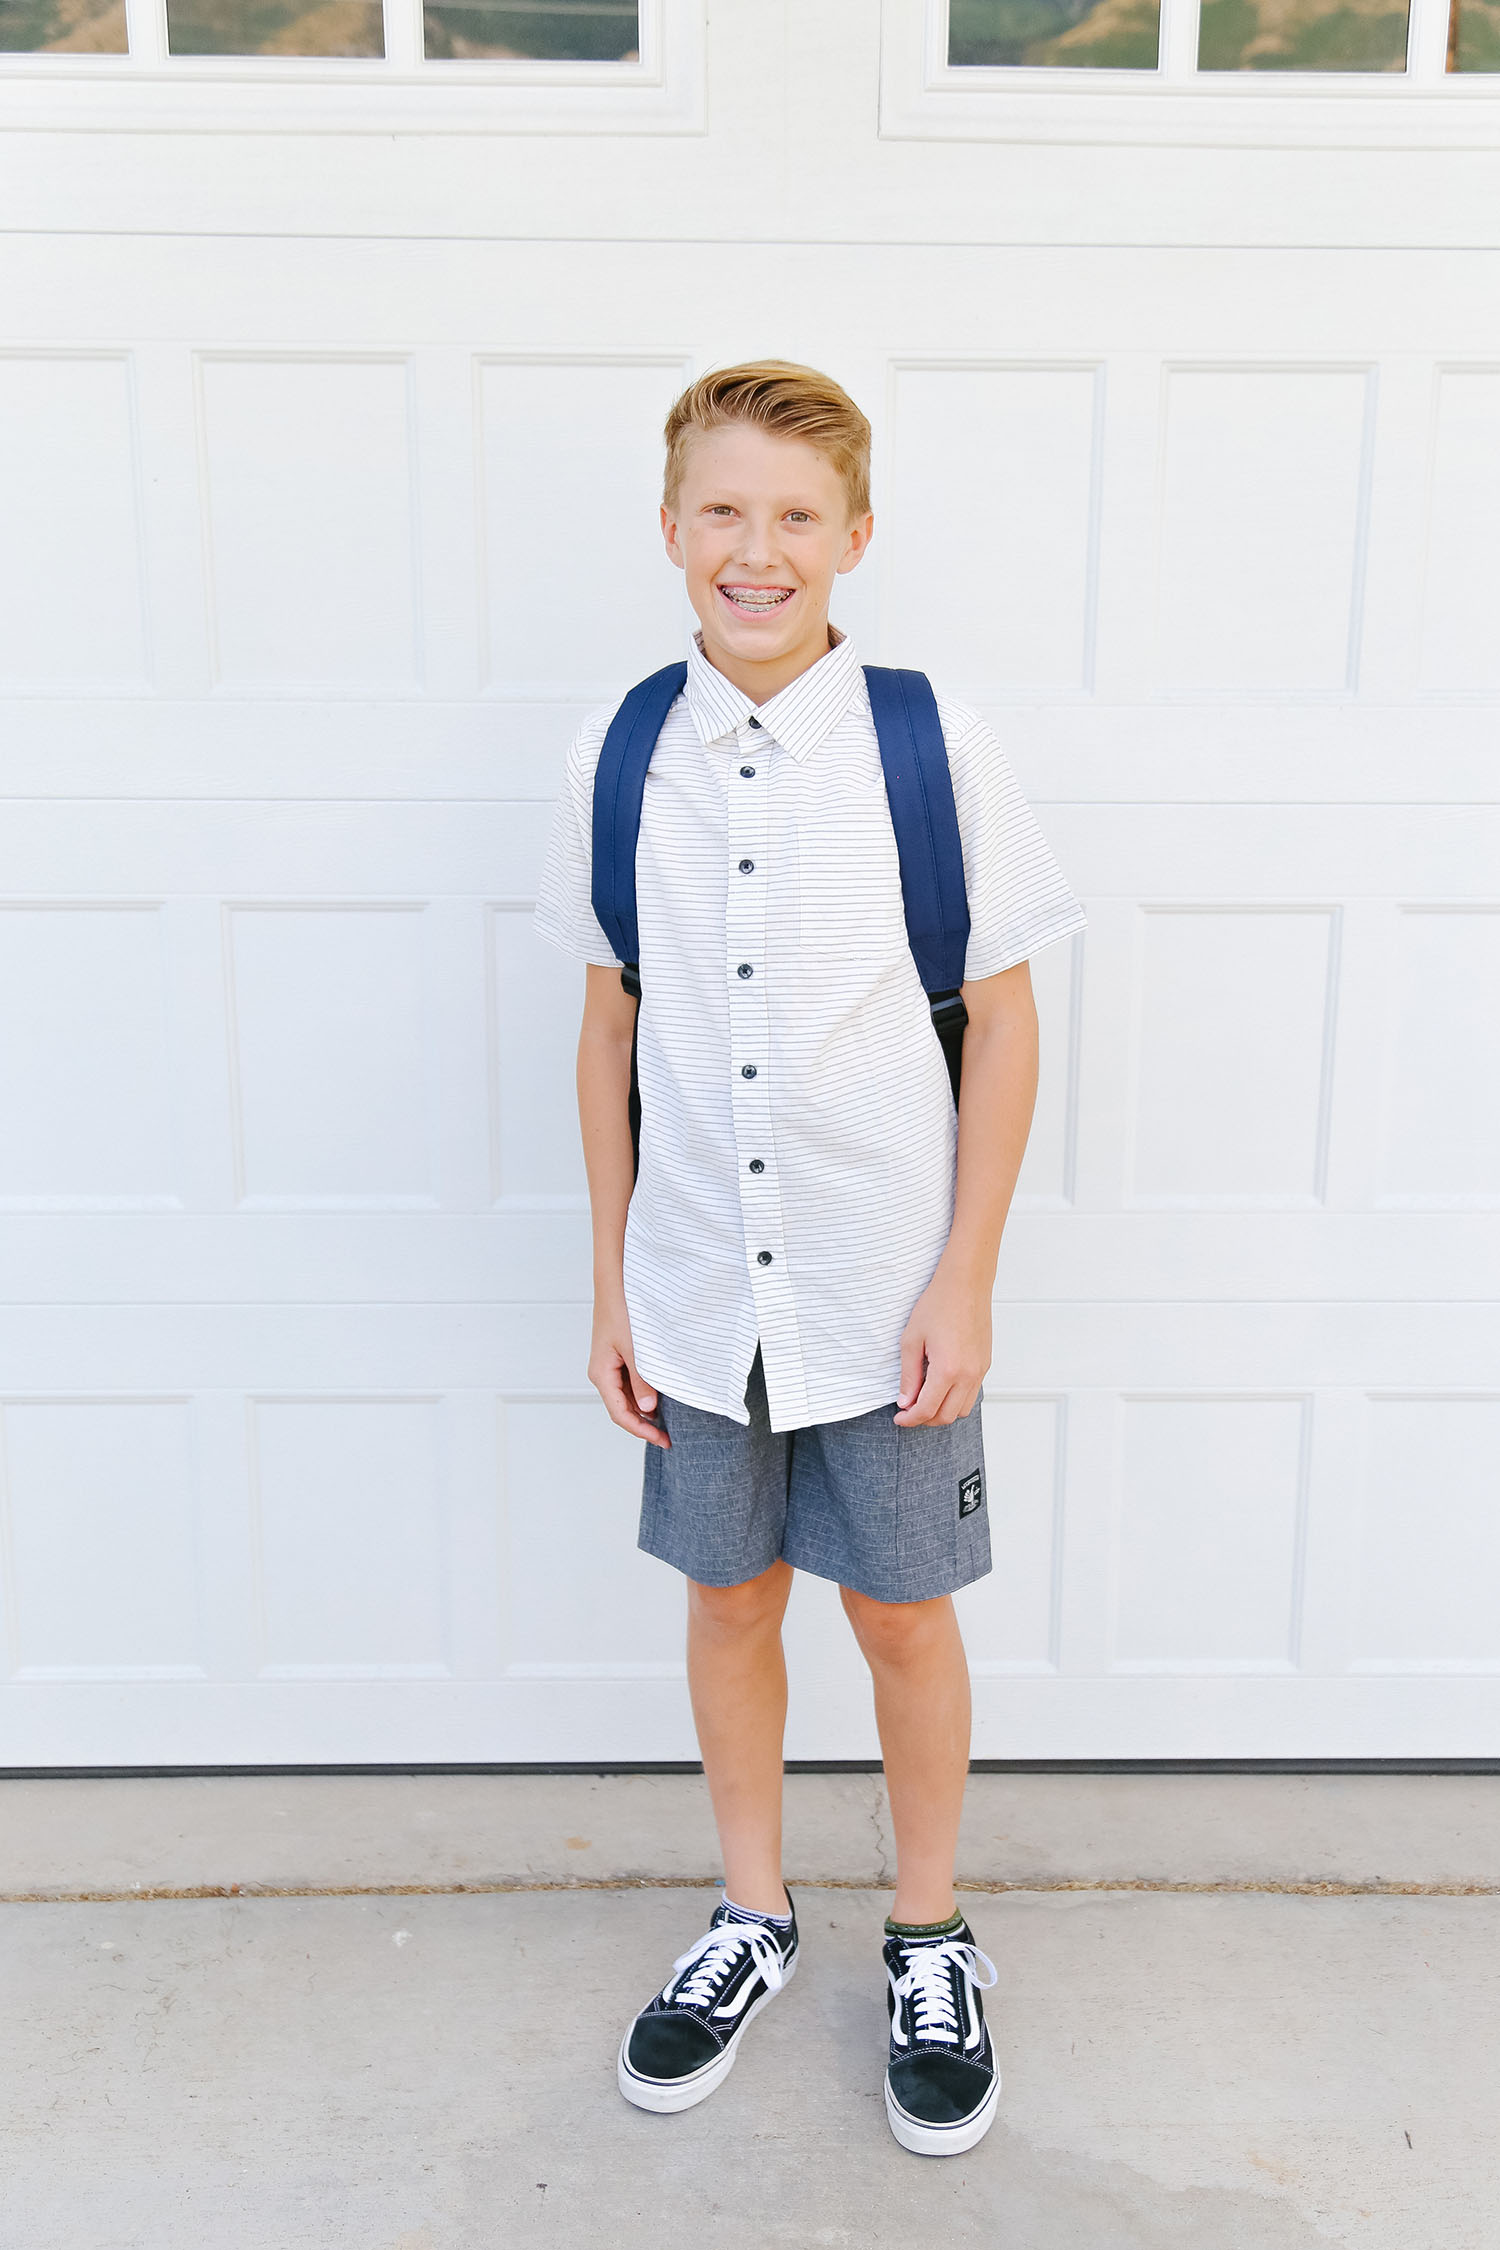 Walmart Back to School Favorites: Outfits, Supplies & Backpacks featured by US lifestyle blogger, By Jen Rose